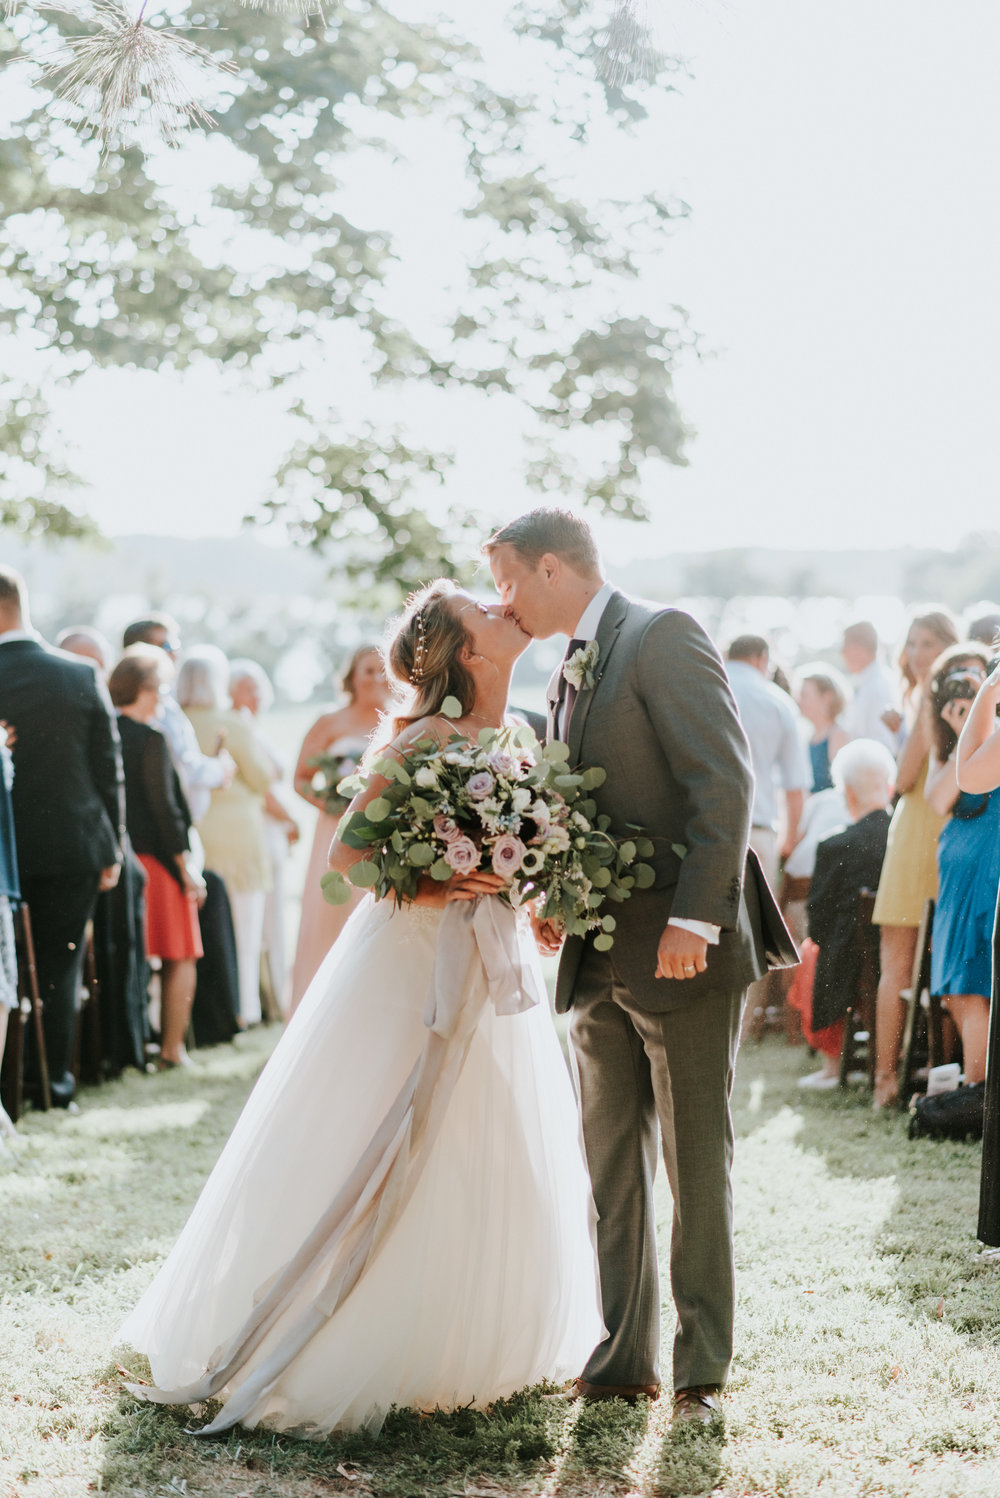 Rustic Oyster Themed Eastern Shore Maryland Outdoor Wedding by East Made Event Company Wedding Planner and Bekah Kay Creative818.jpg